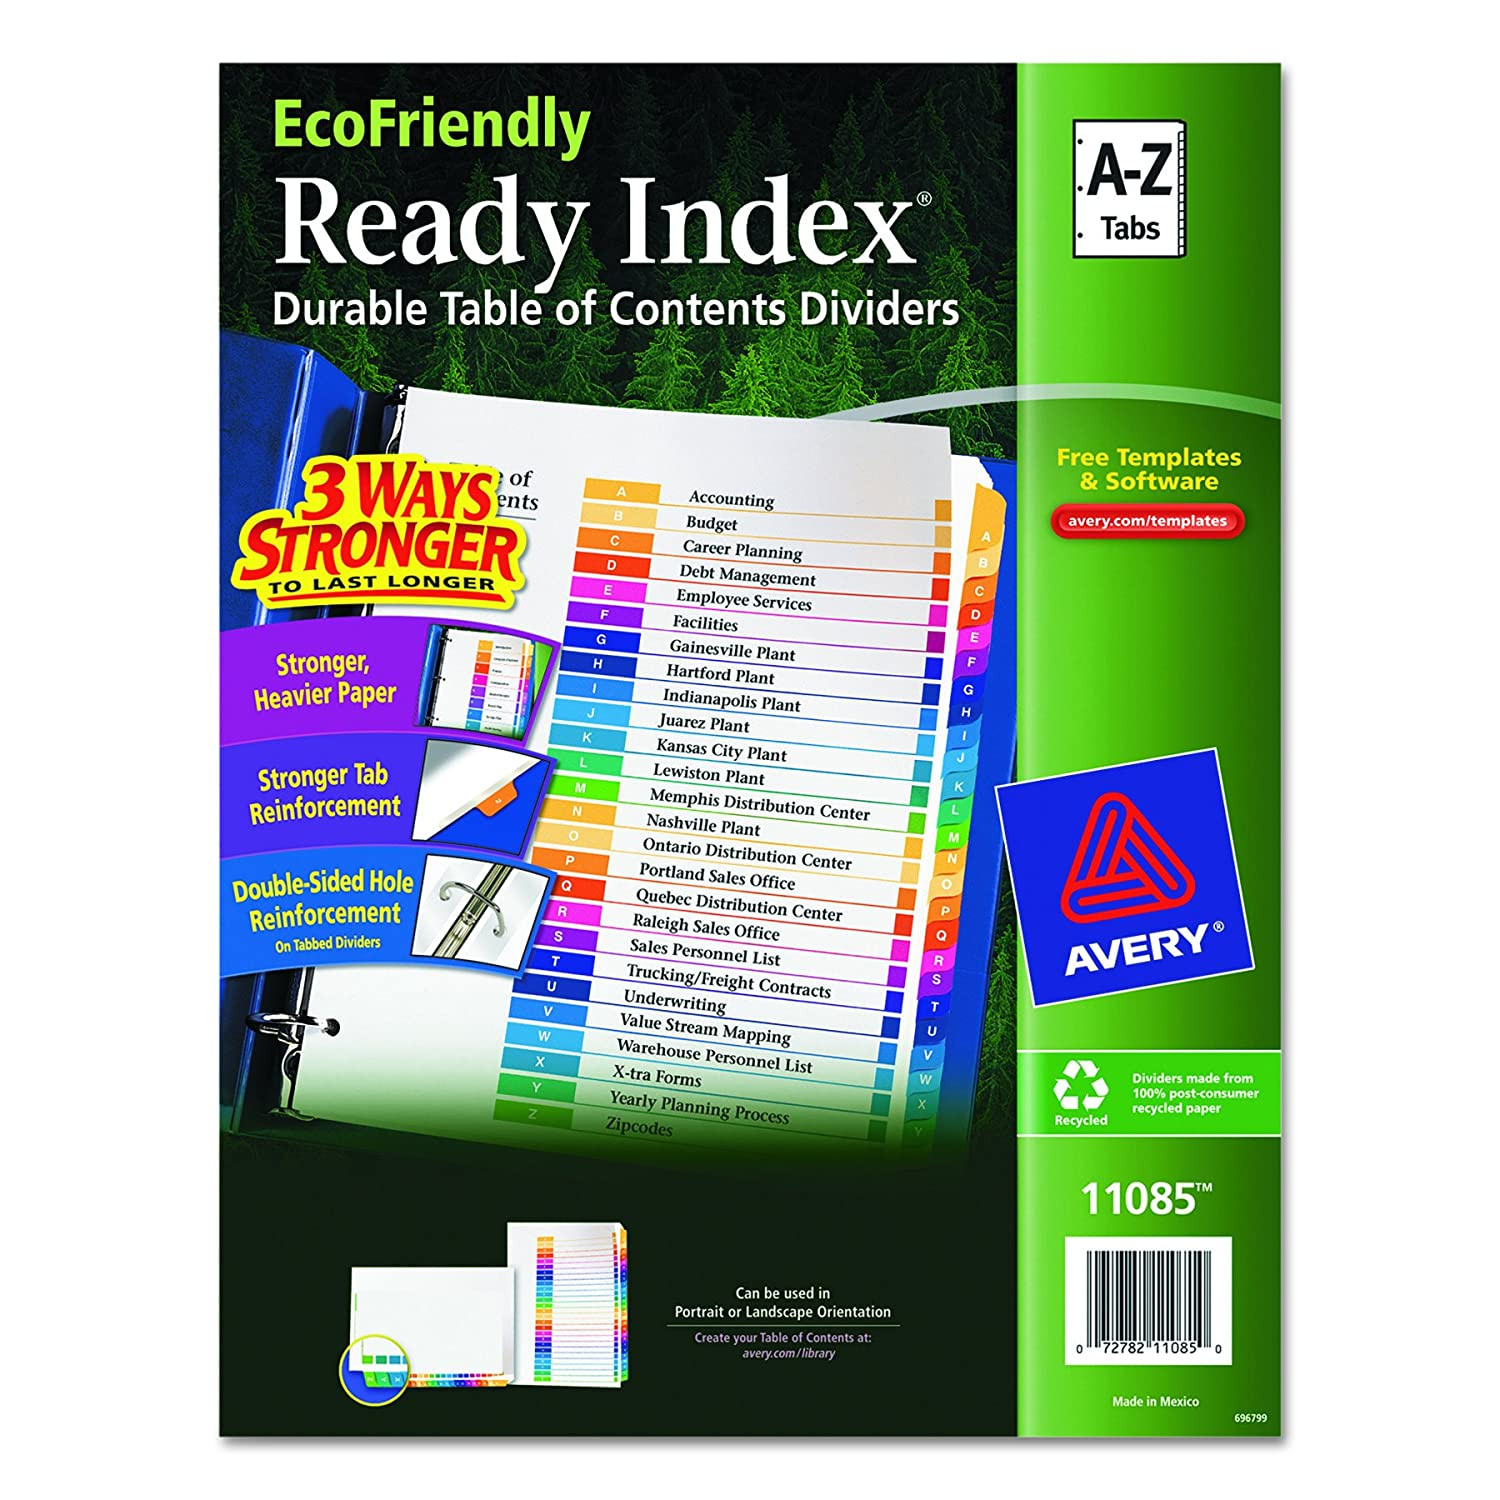 Avery EcoFriendly Ready Index Table of Contents Dividers, A-Z Tab Set (11085)